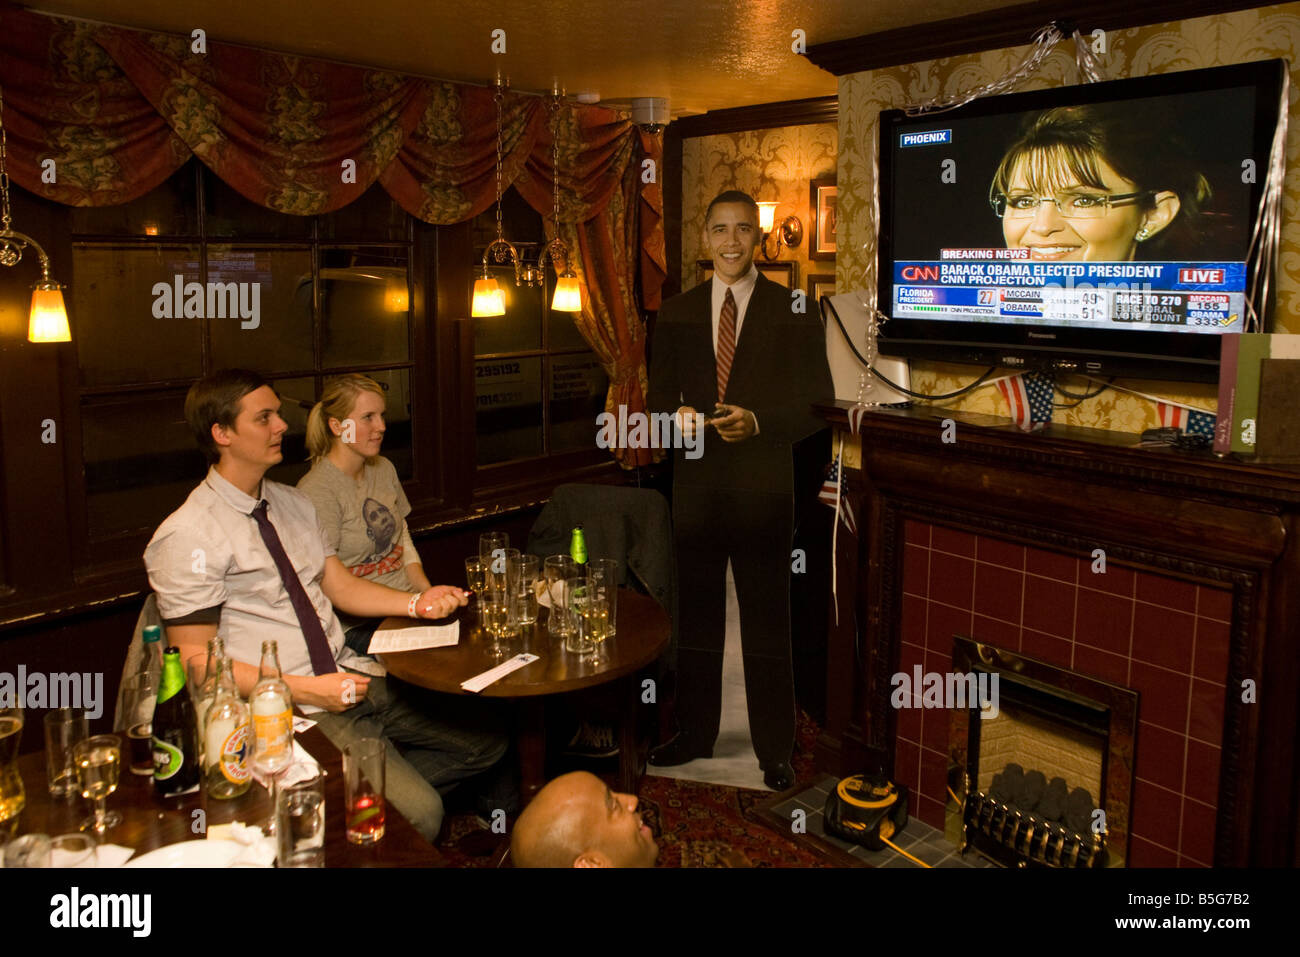 Young couple watch Sarah Palin by life-sized cut-out of Barack Obama during  overnight 2008 election London party - Stock Image